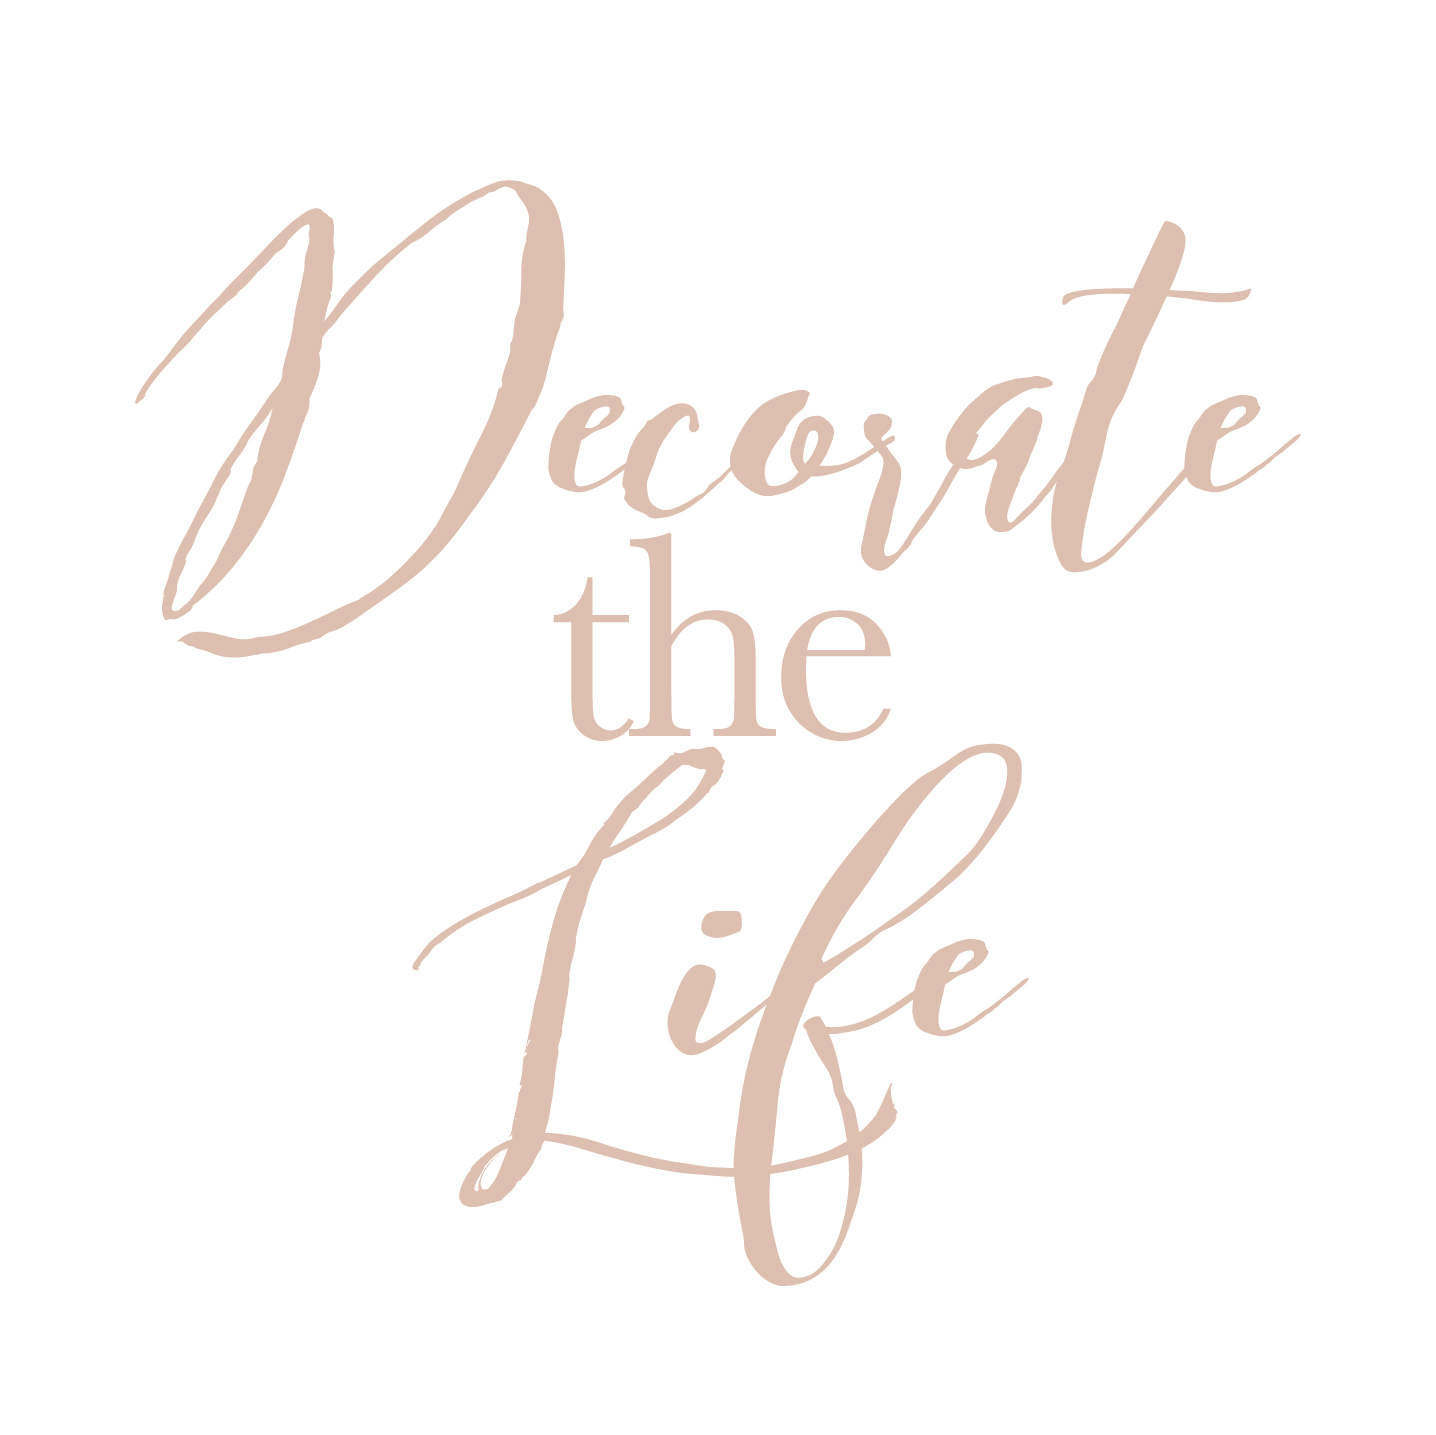 Decorate the Life